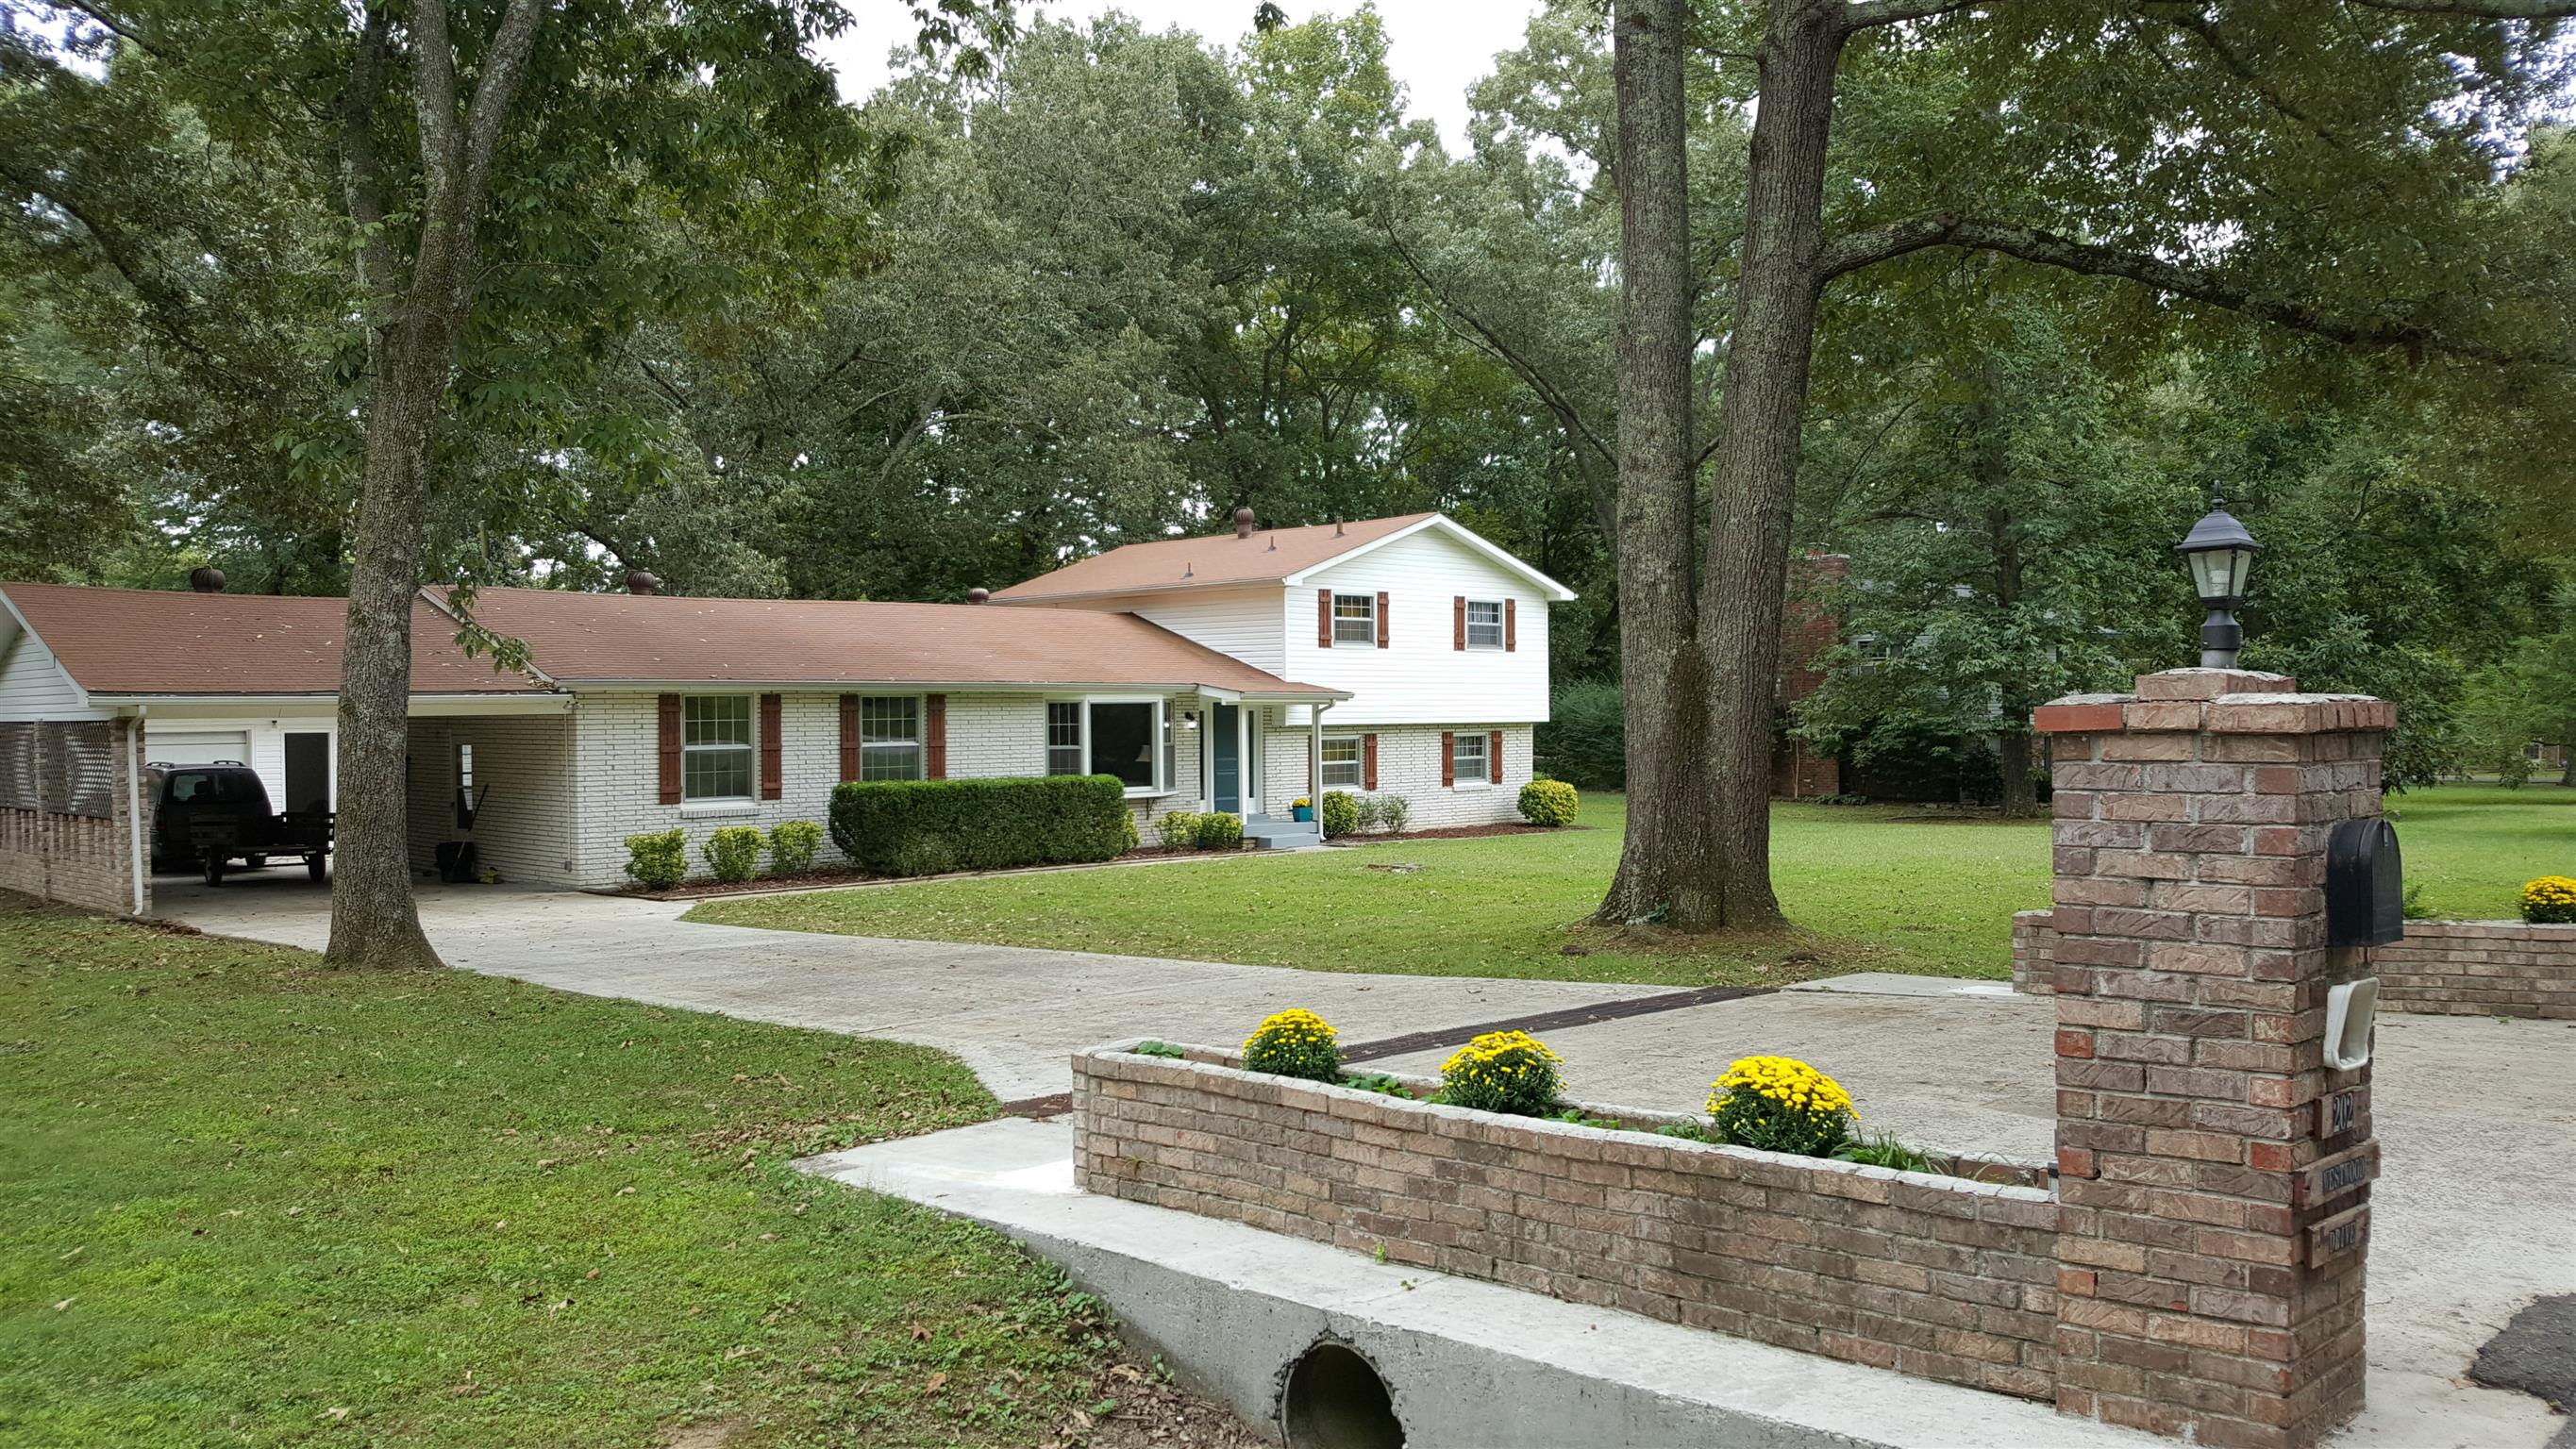 202 Westwood Dr, Tullahoma, Tennessee